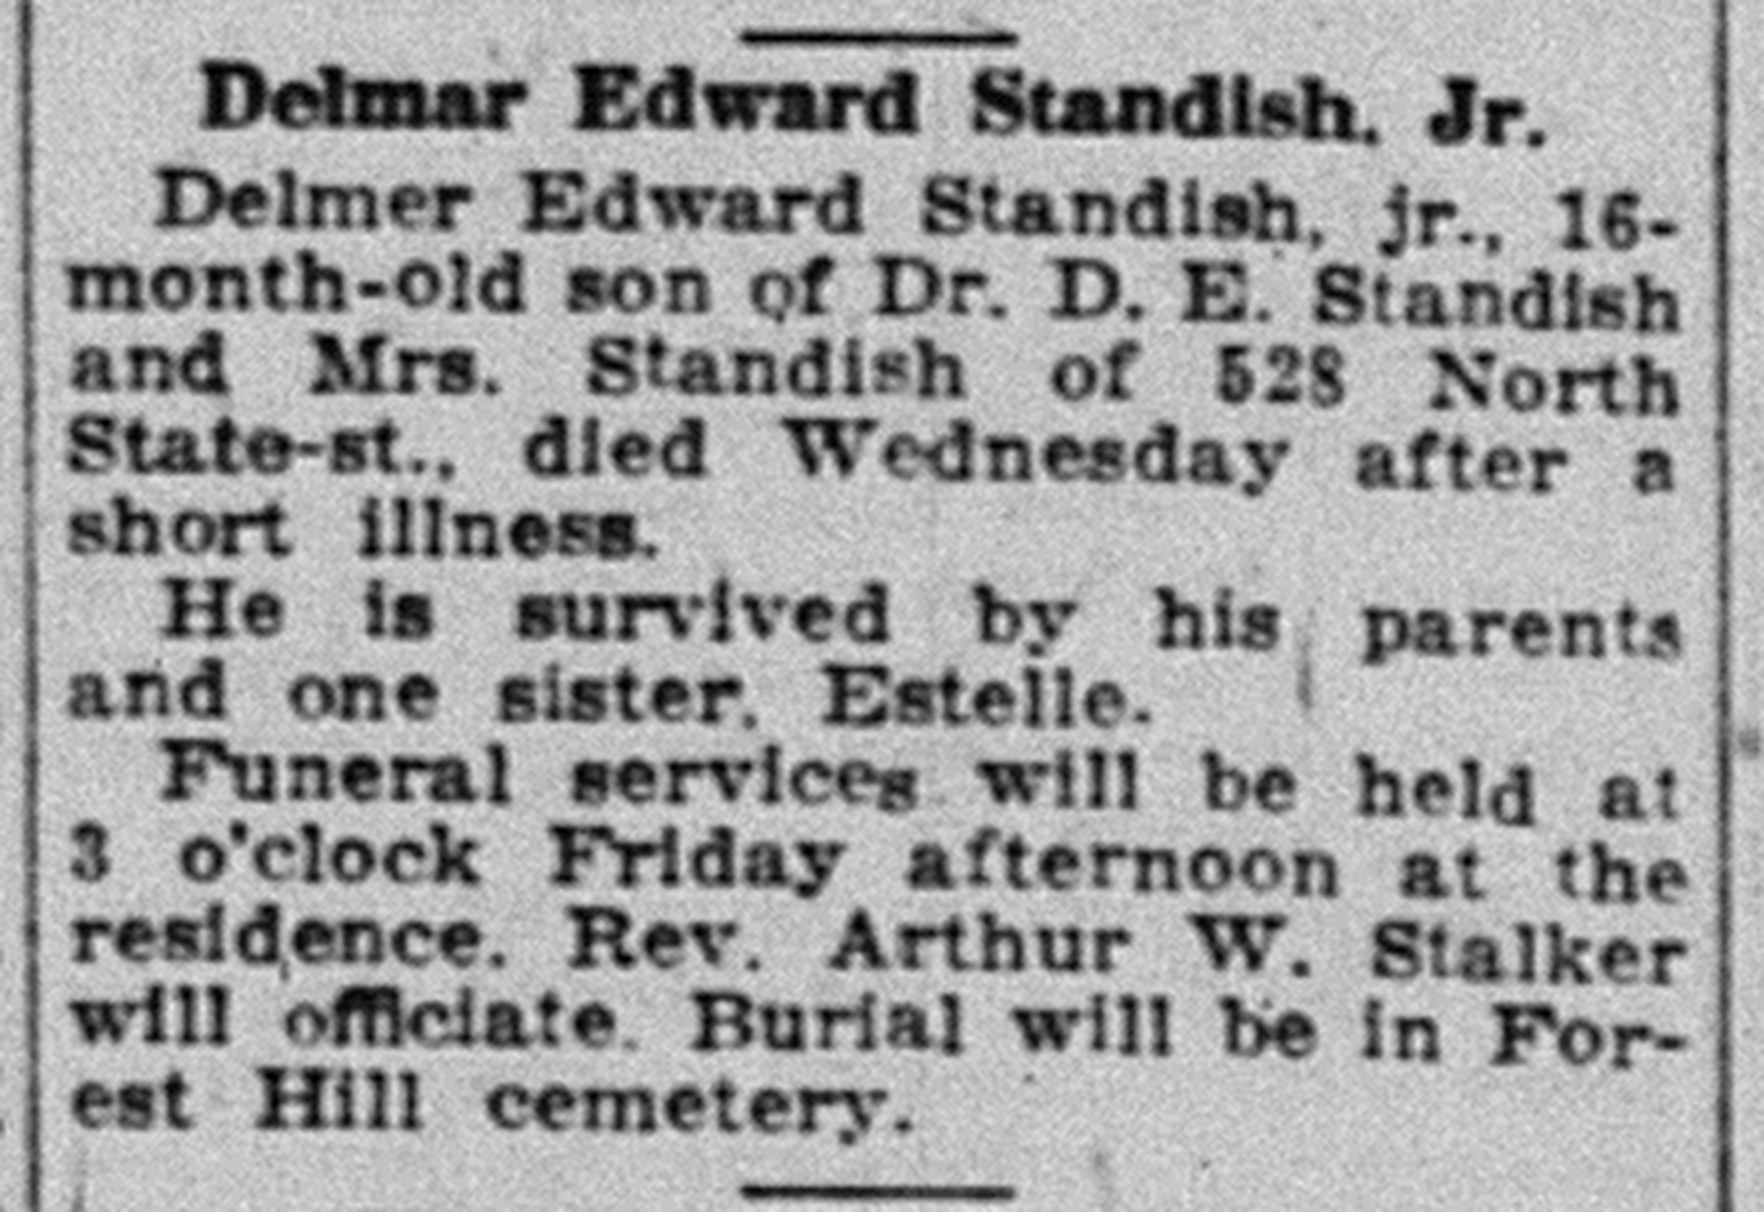 Delmar Edward Standish, Jr. image